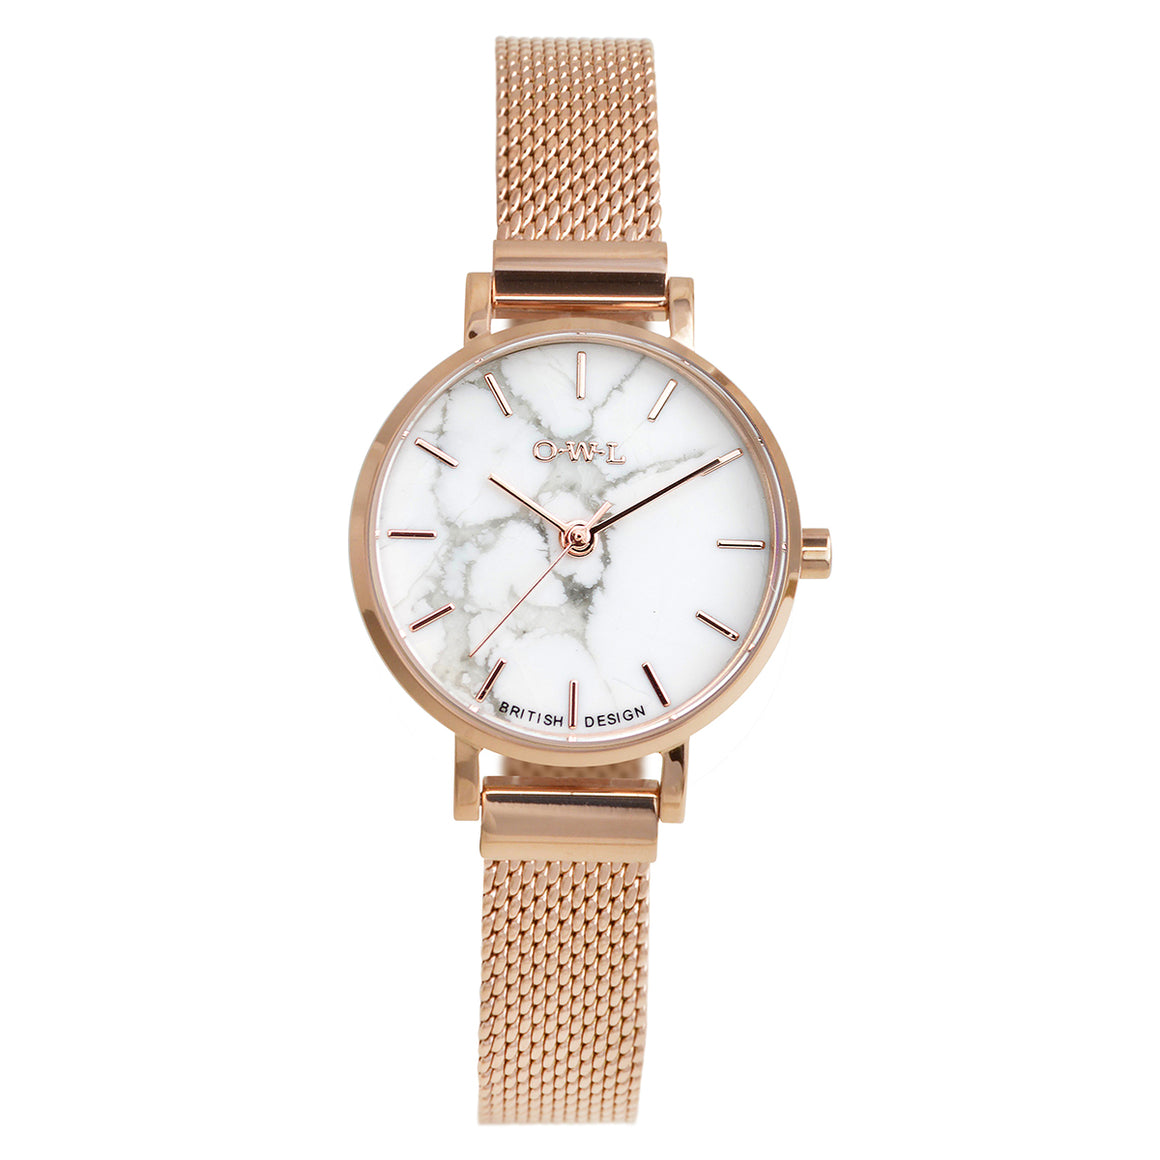 Amesbury Rose gold mesh watch with a genuine Howlite stone dial - OWL watches